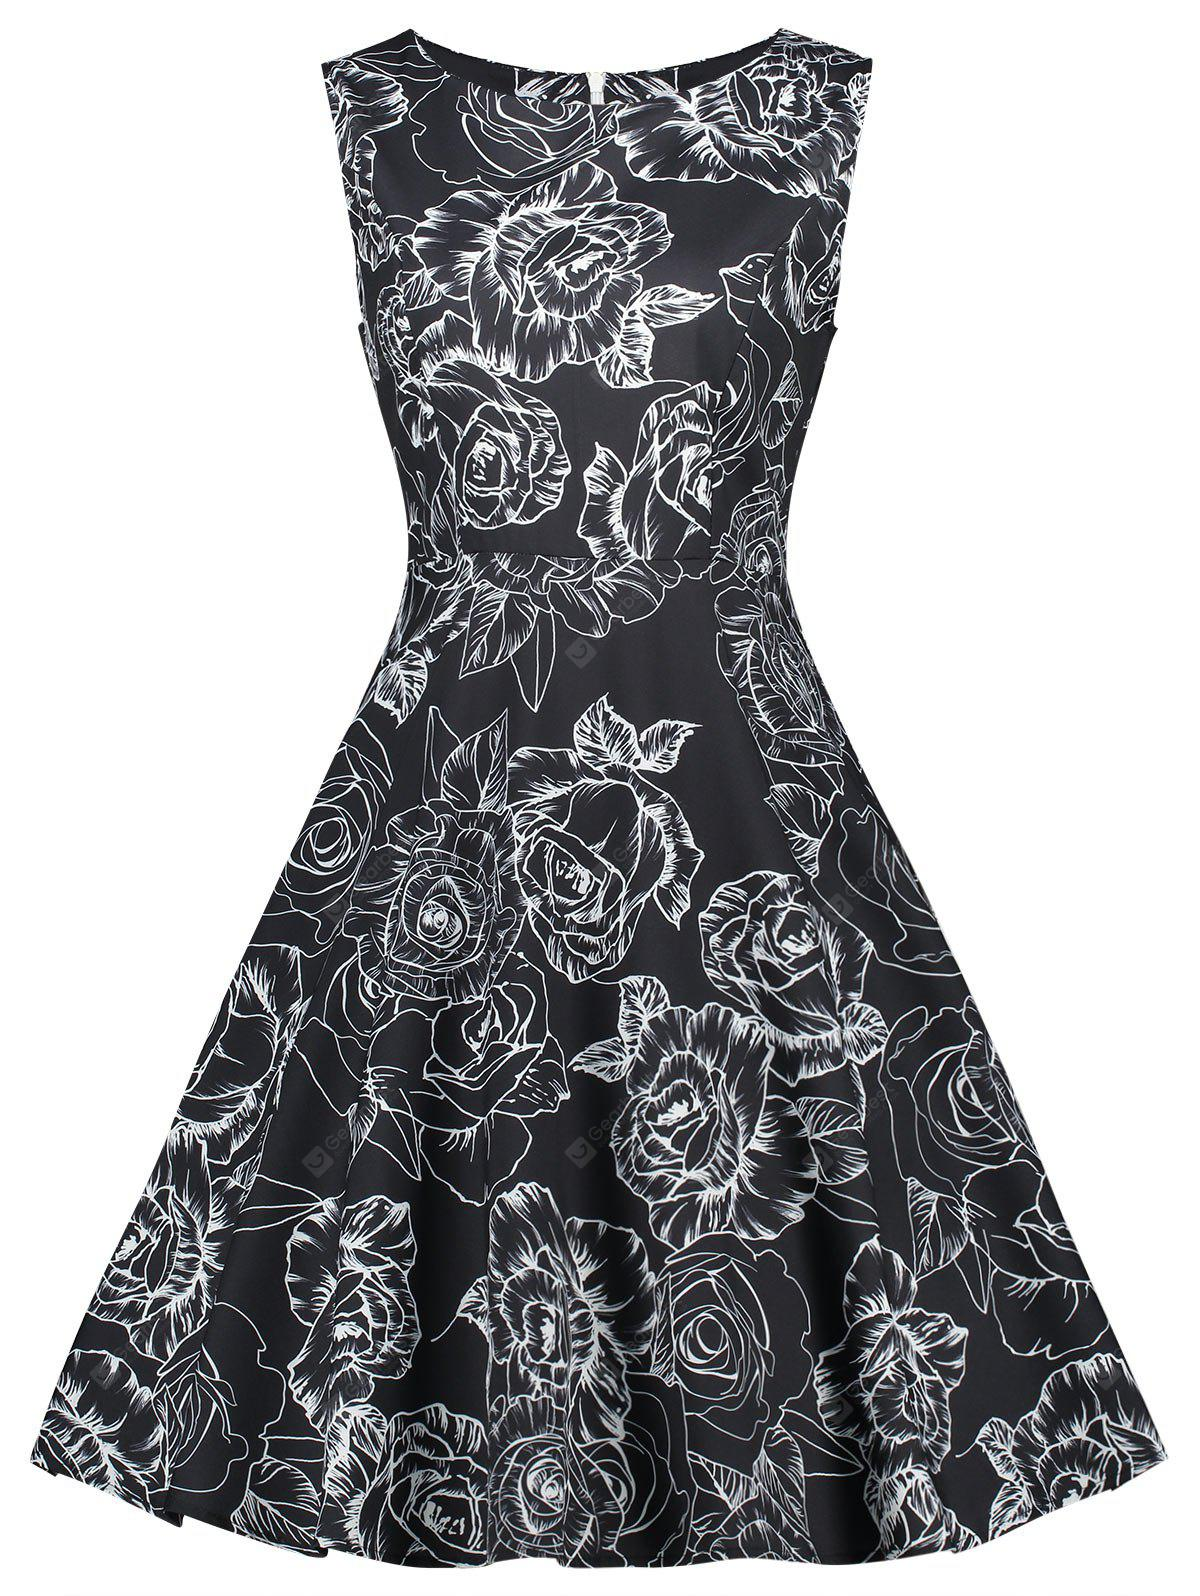 Retro Floral Printed Fit and Flare Dress